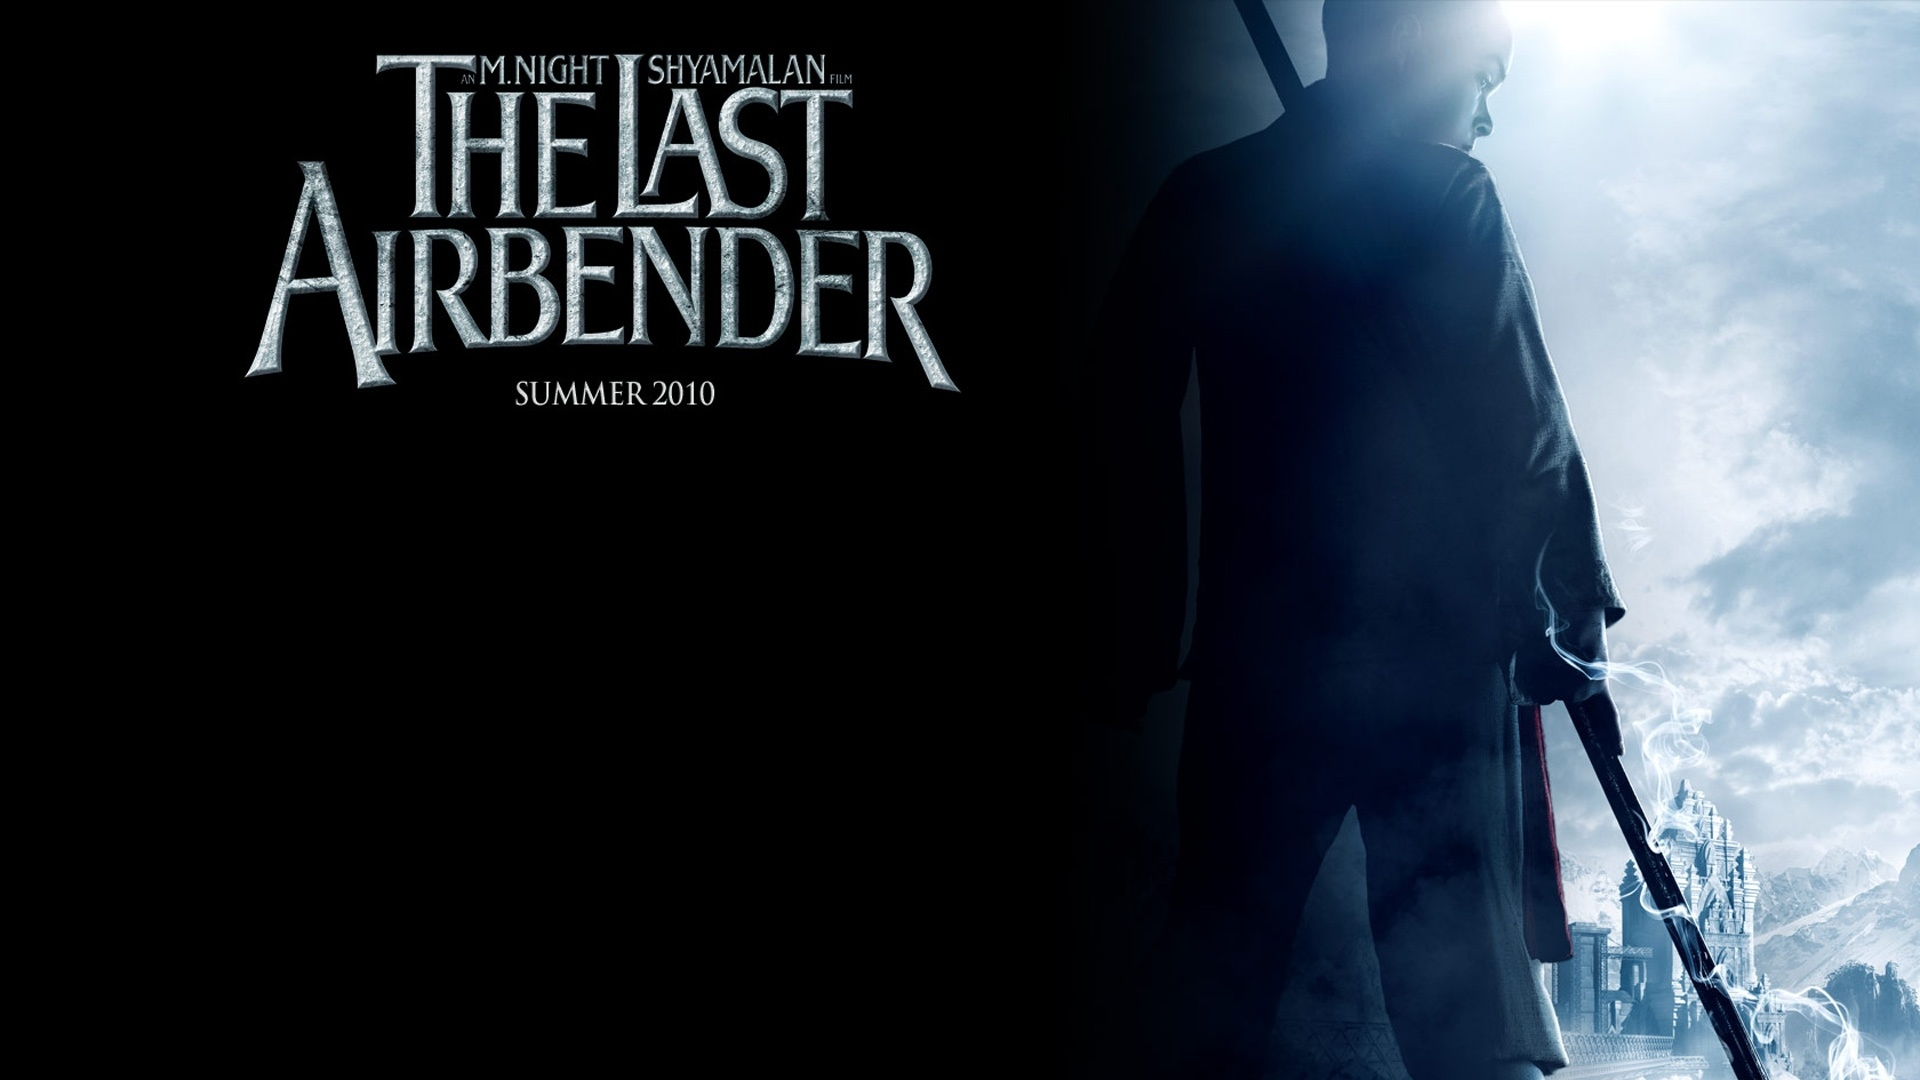 The Last Airbender   High Definition Wallpapers   HD 1920x1080